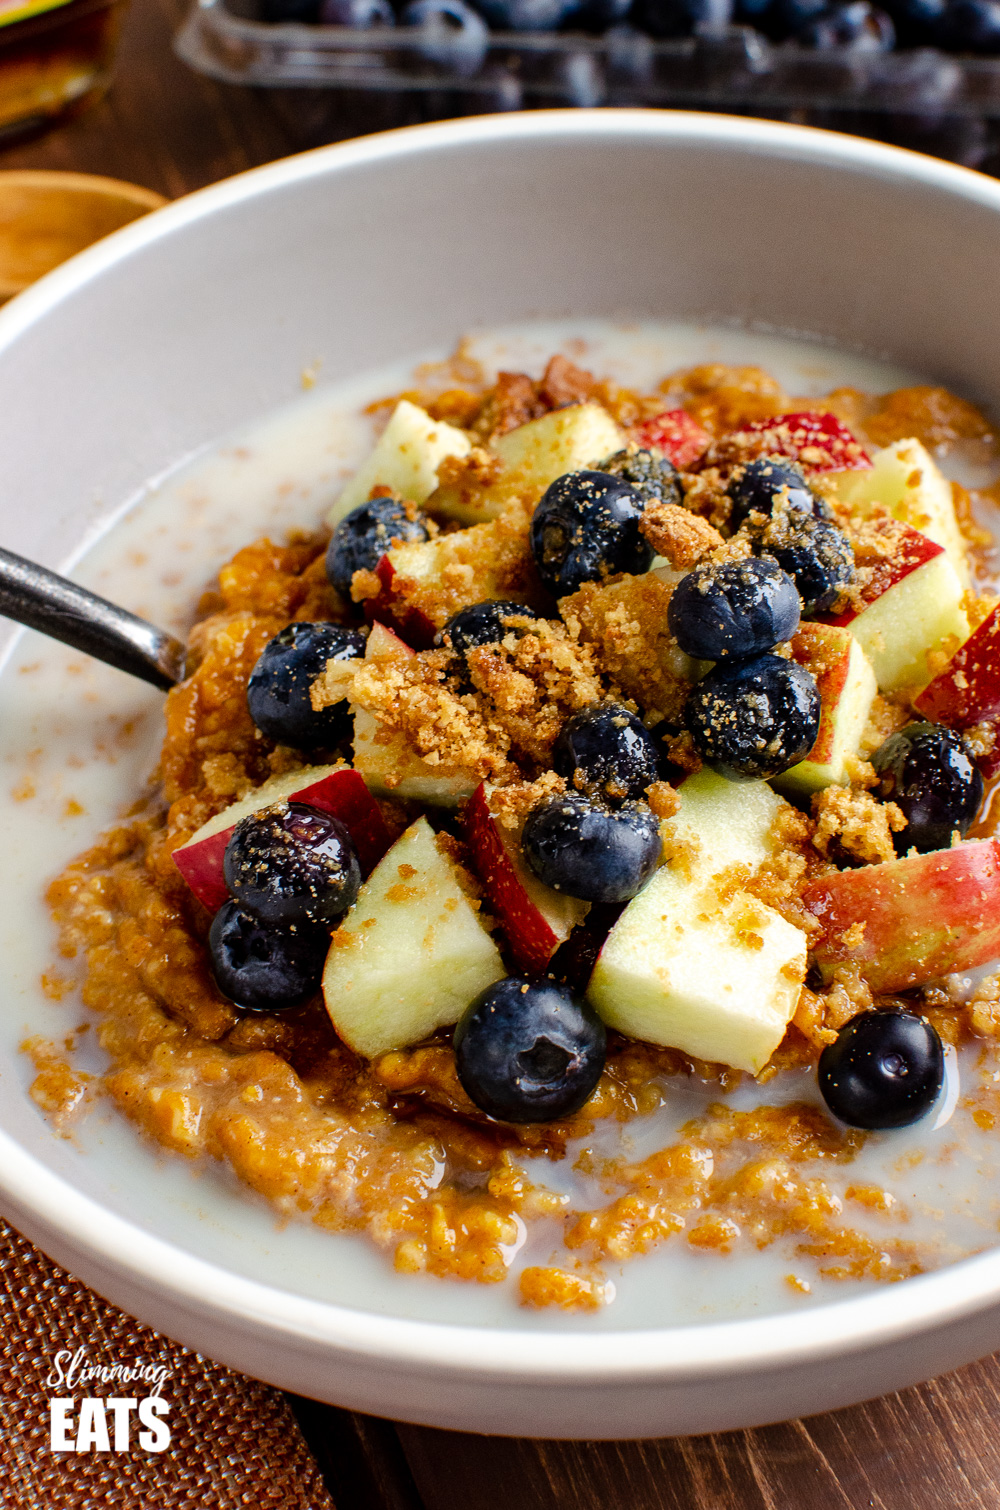 pumpkin oatmeal in grey bowl topped with blueberries, apple and crumbled biscuit